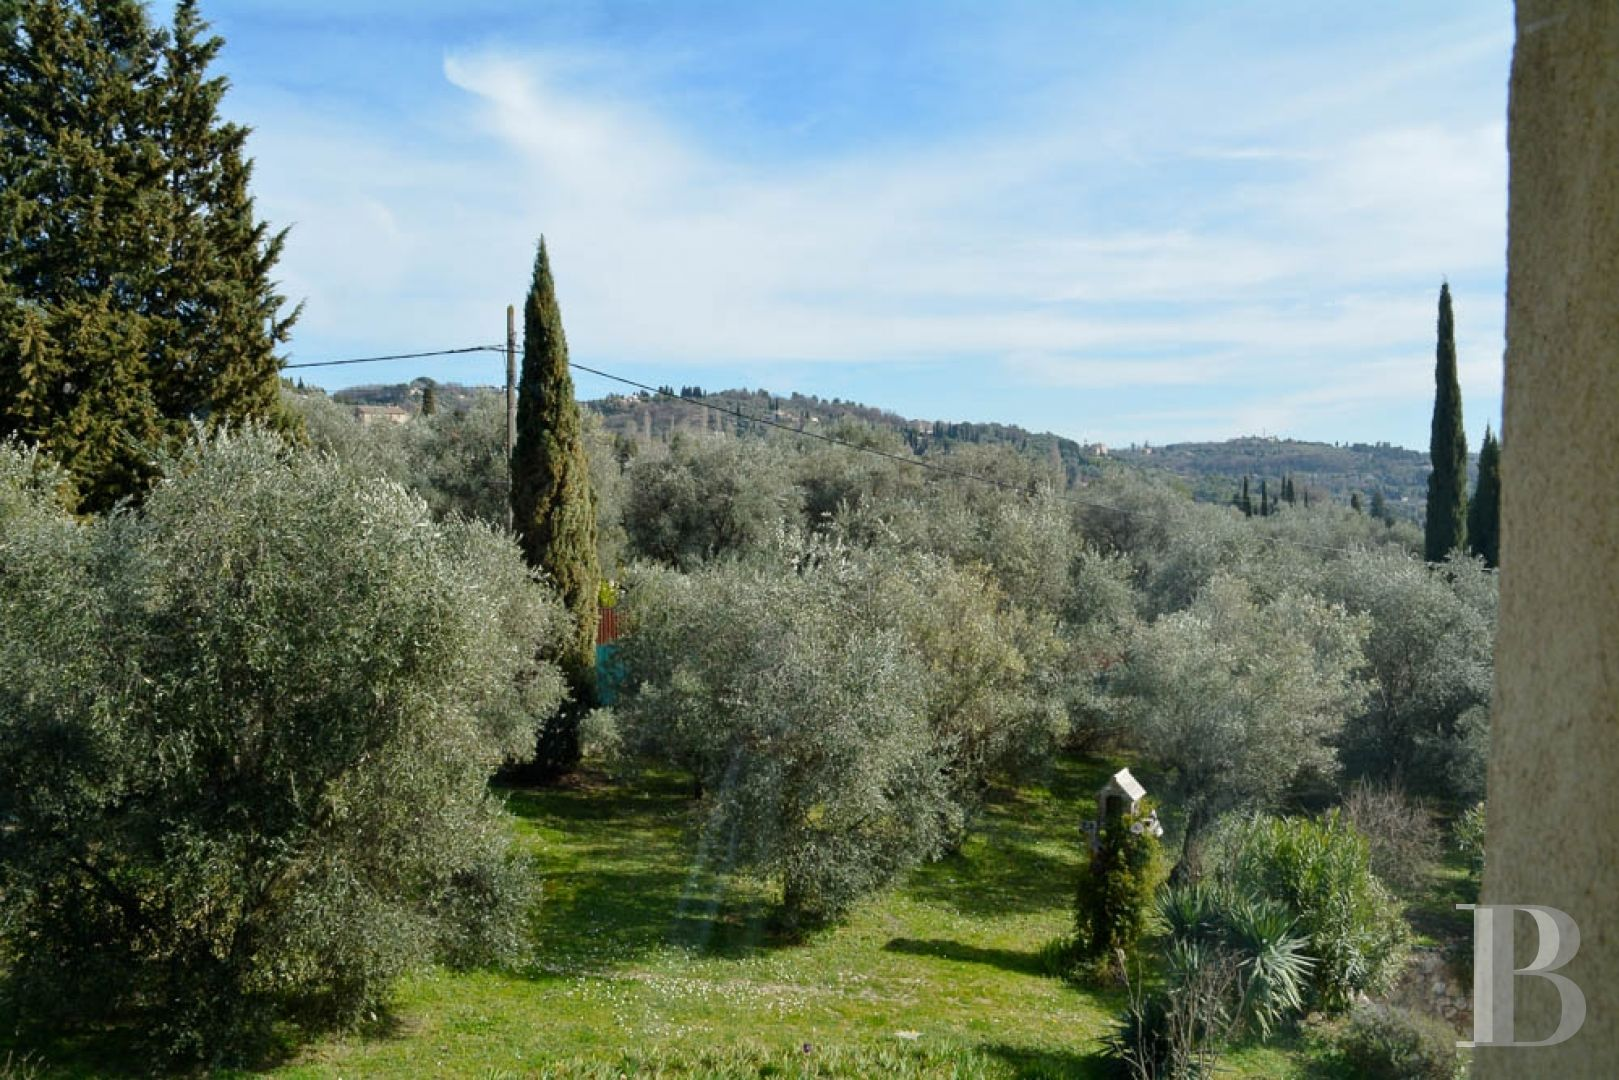 property for sale France provence cote dazur residences traditional - 13 zoom